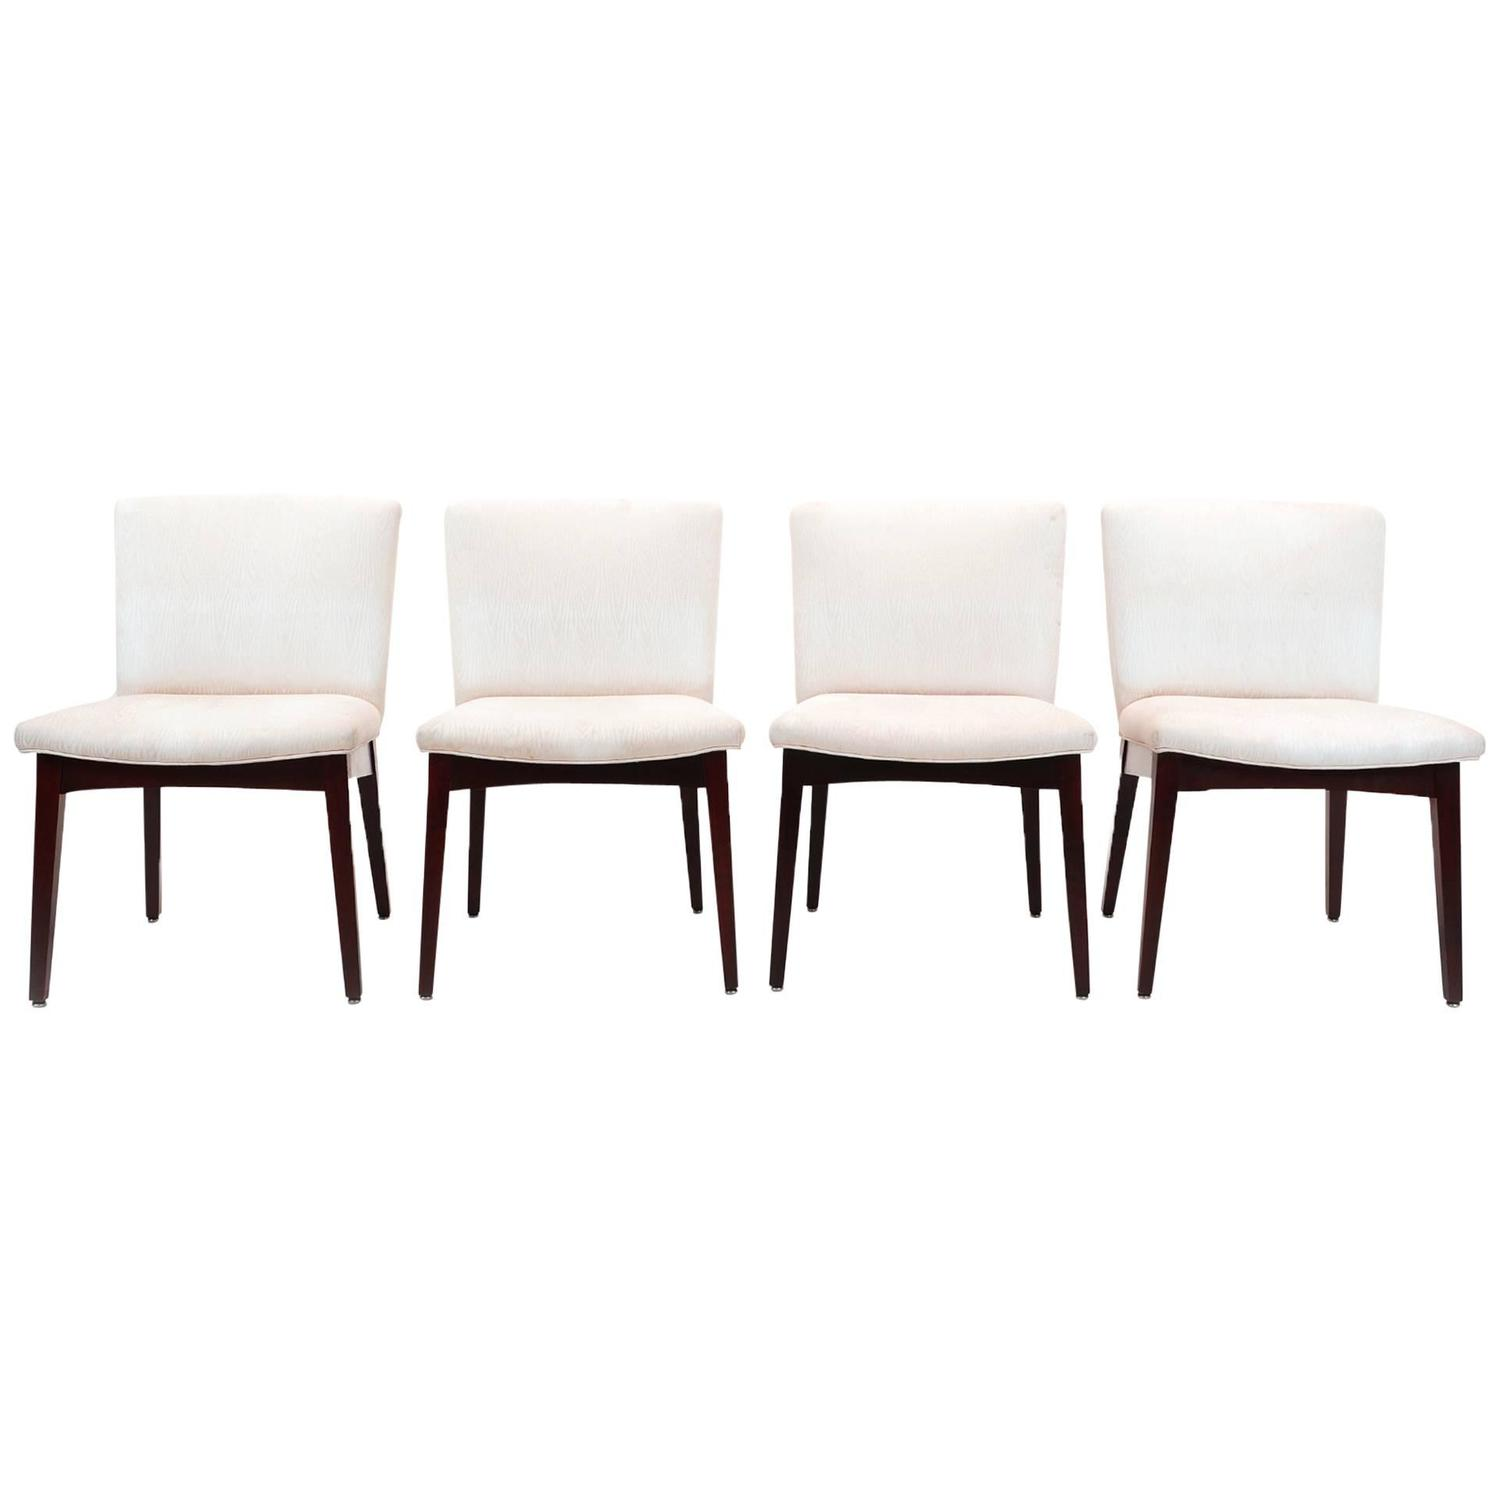 Set of four armless jens risom dining chairs for sale at 1stdibs - Jens risom dining chairs ...